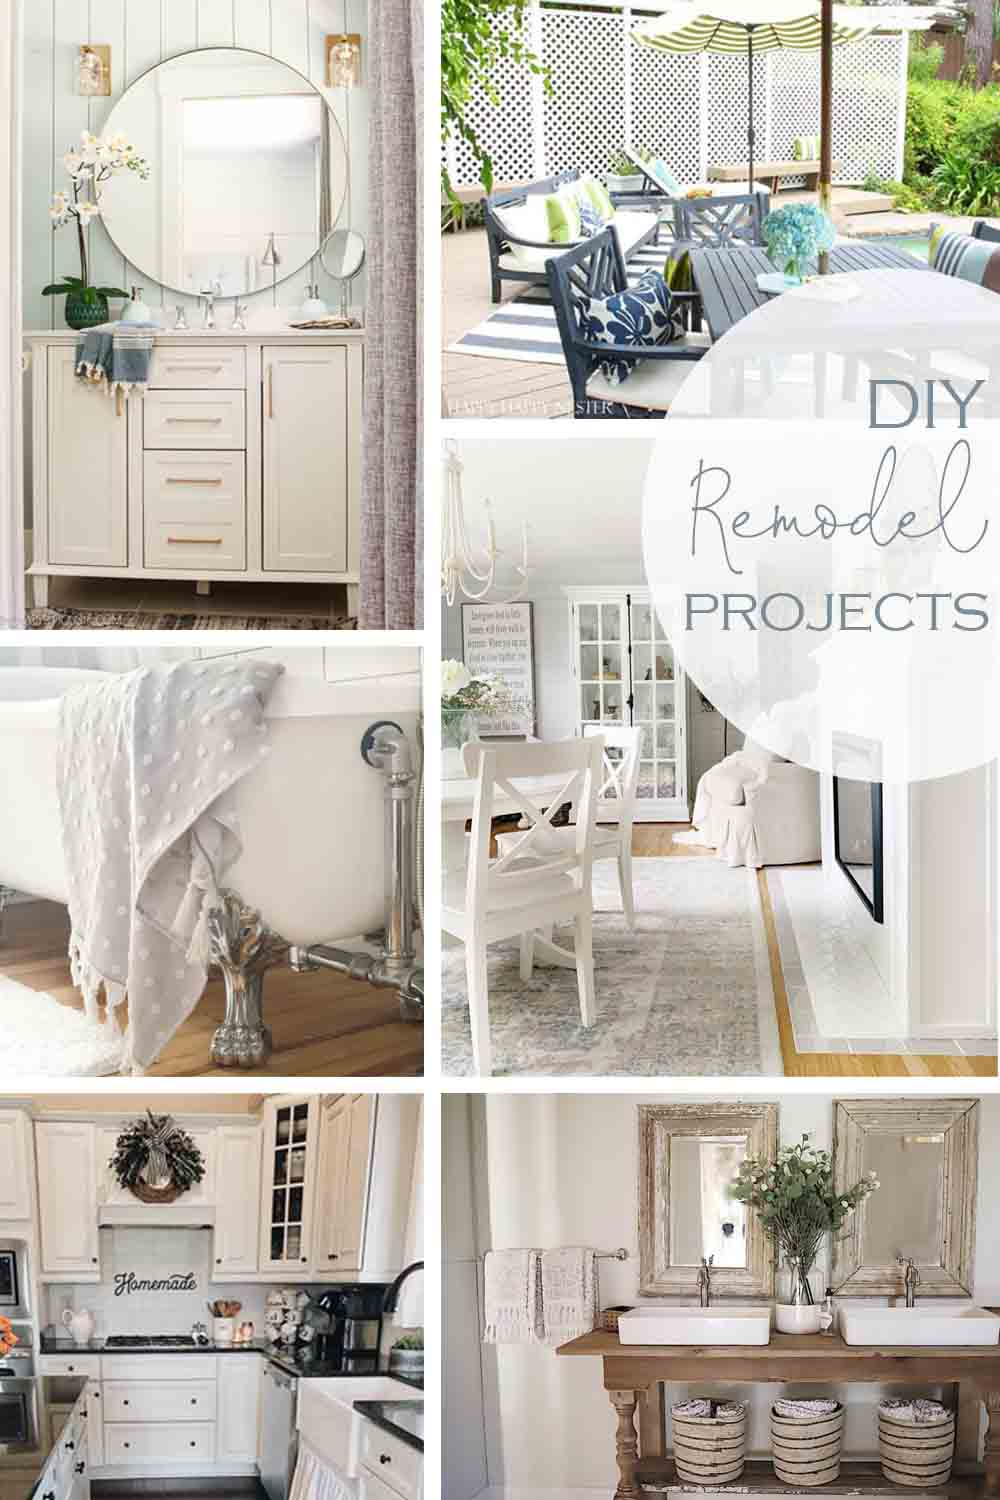 Do you need some Home Renovations Ideas on a Budget? Here are six real home remodels showing the before and after photos. The projects include a few bathrooms, fireplace, pool deck, and kitchen. #renovations #DIY #homeprojects